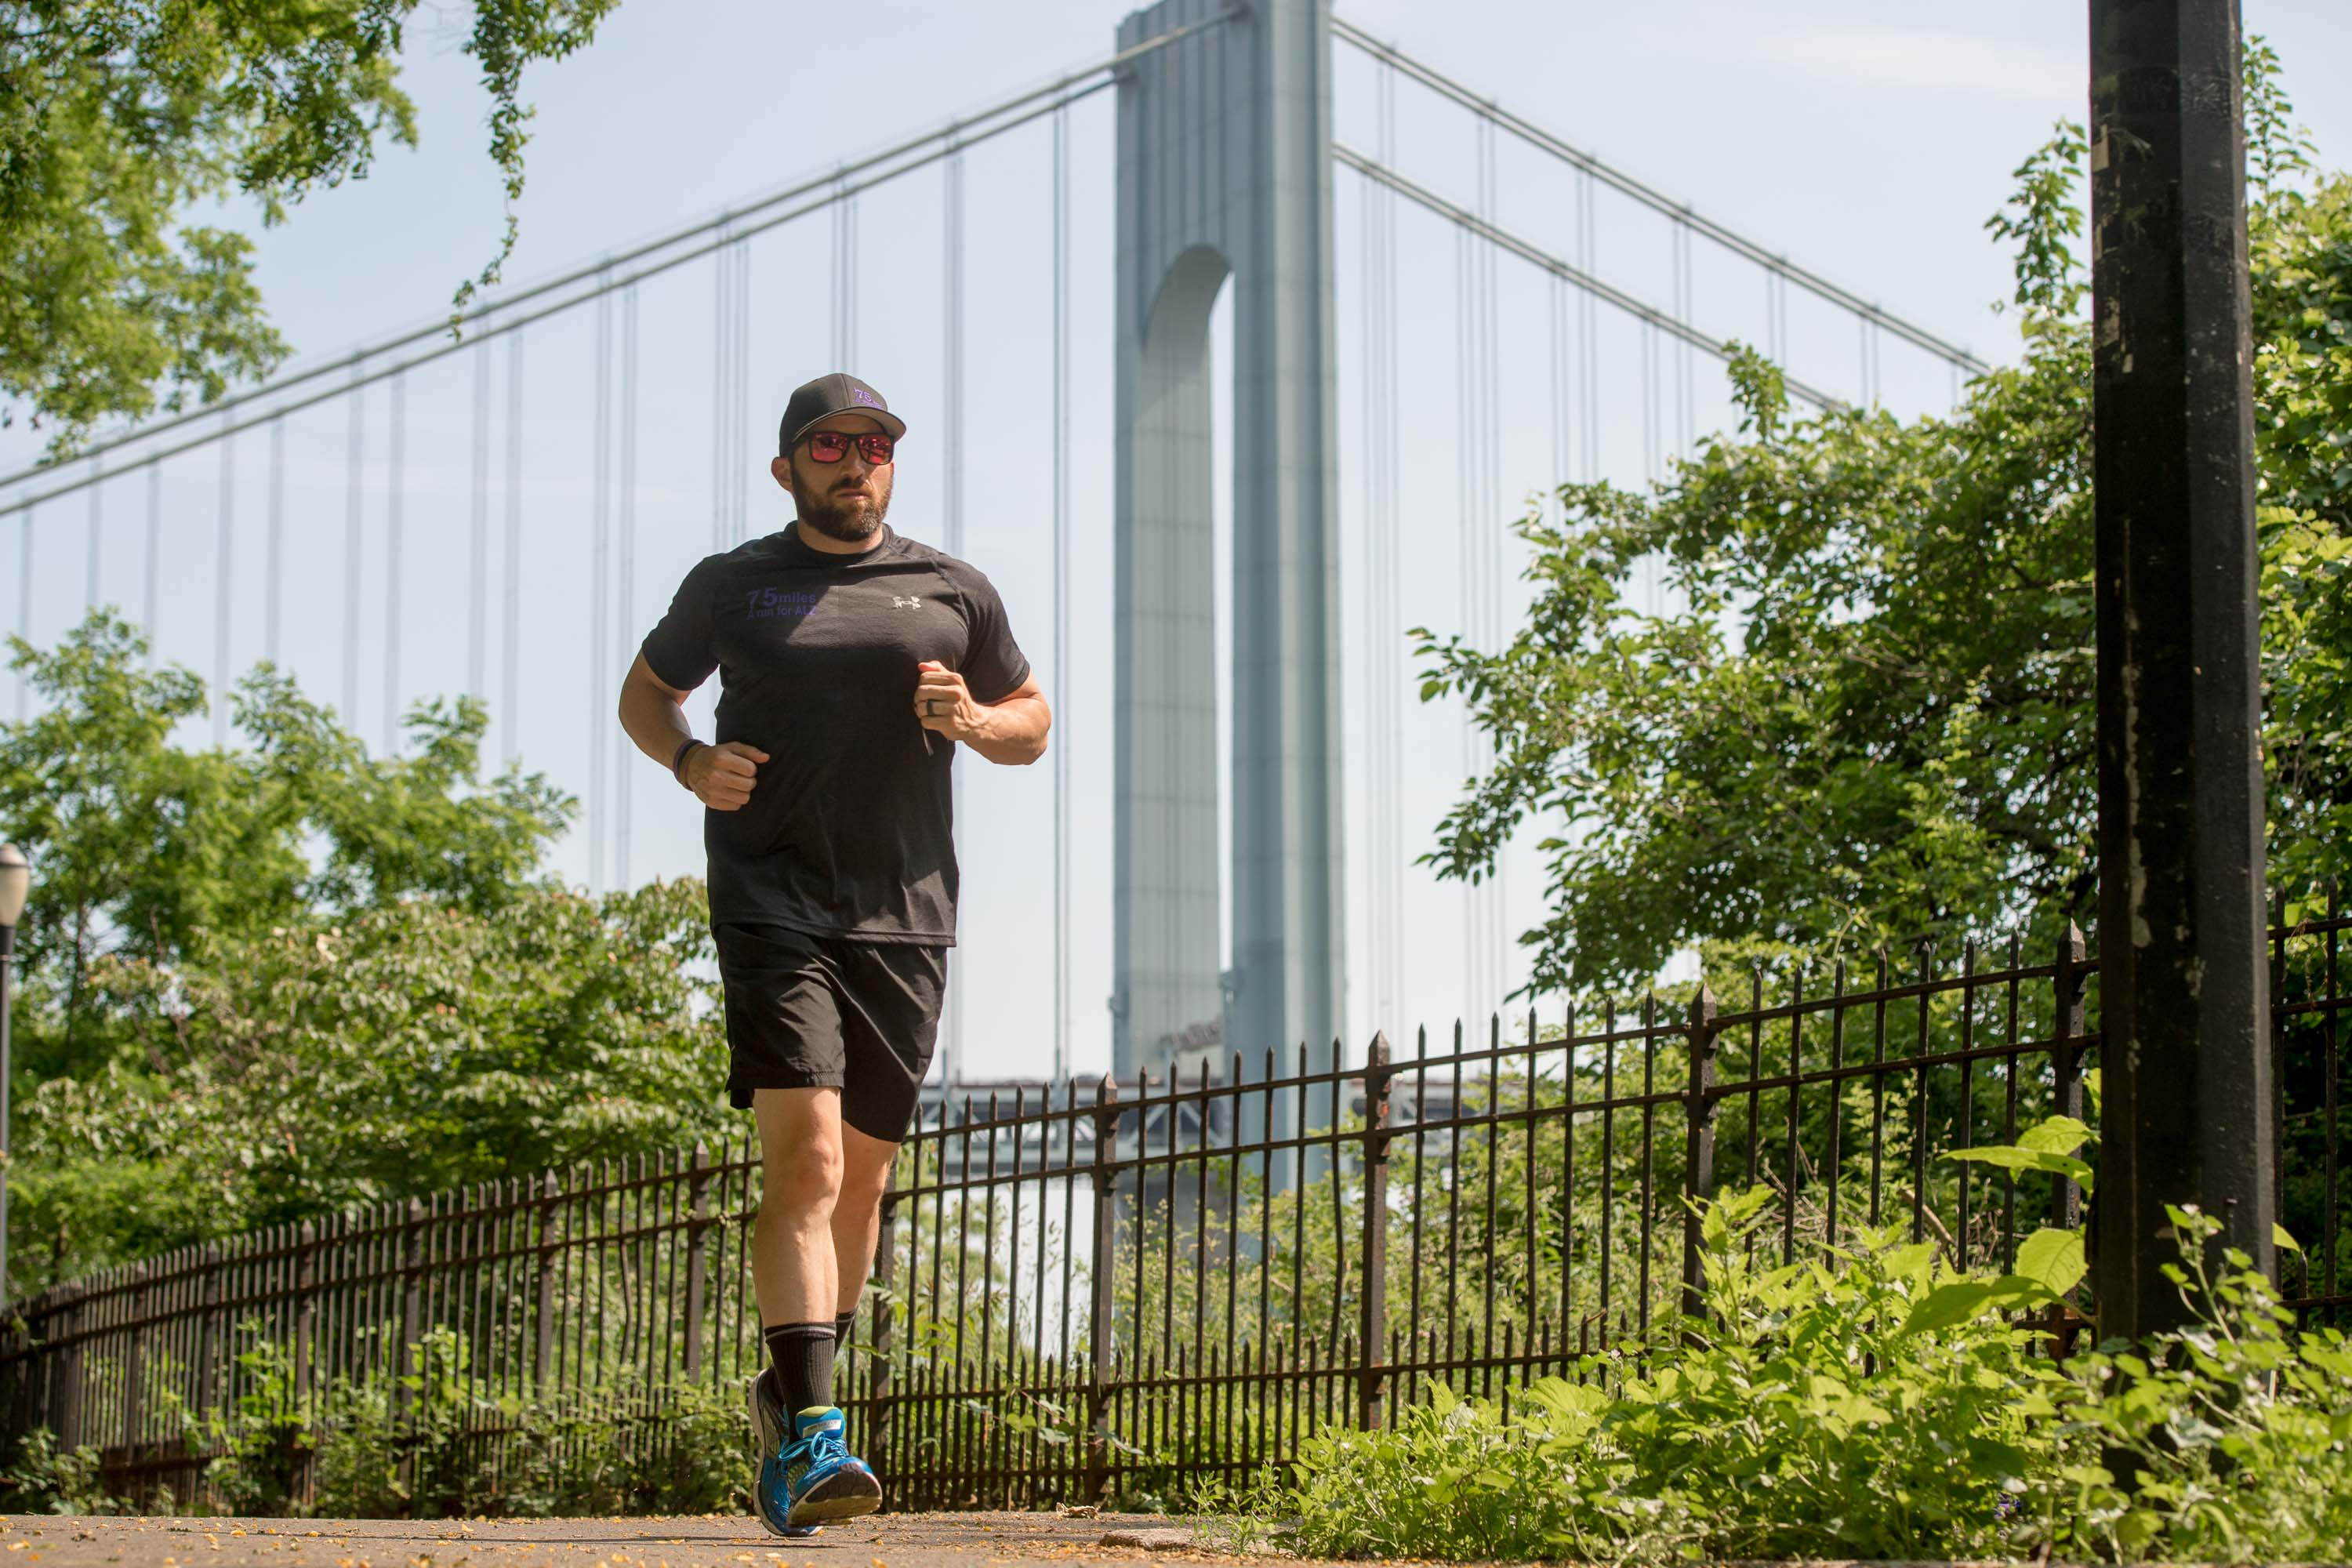 New Yorker Jay Asparro to Run 75 Miles for Alzheimer's in Grandparents Honor